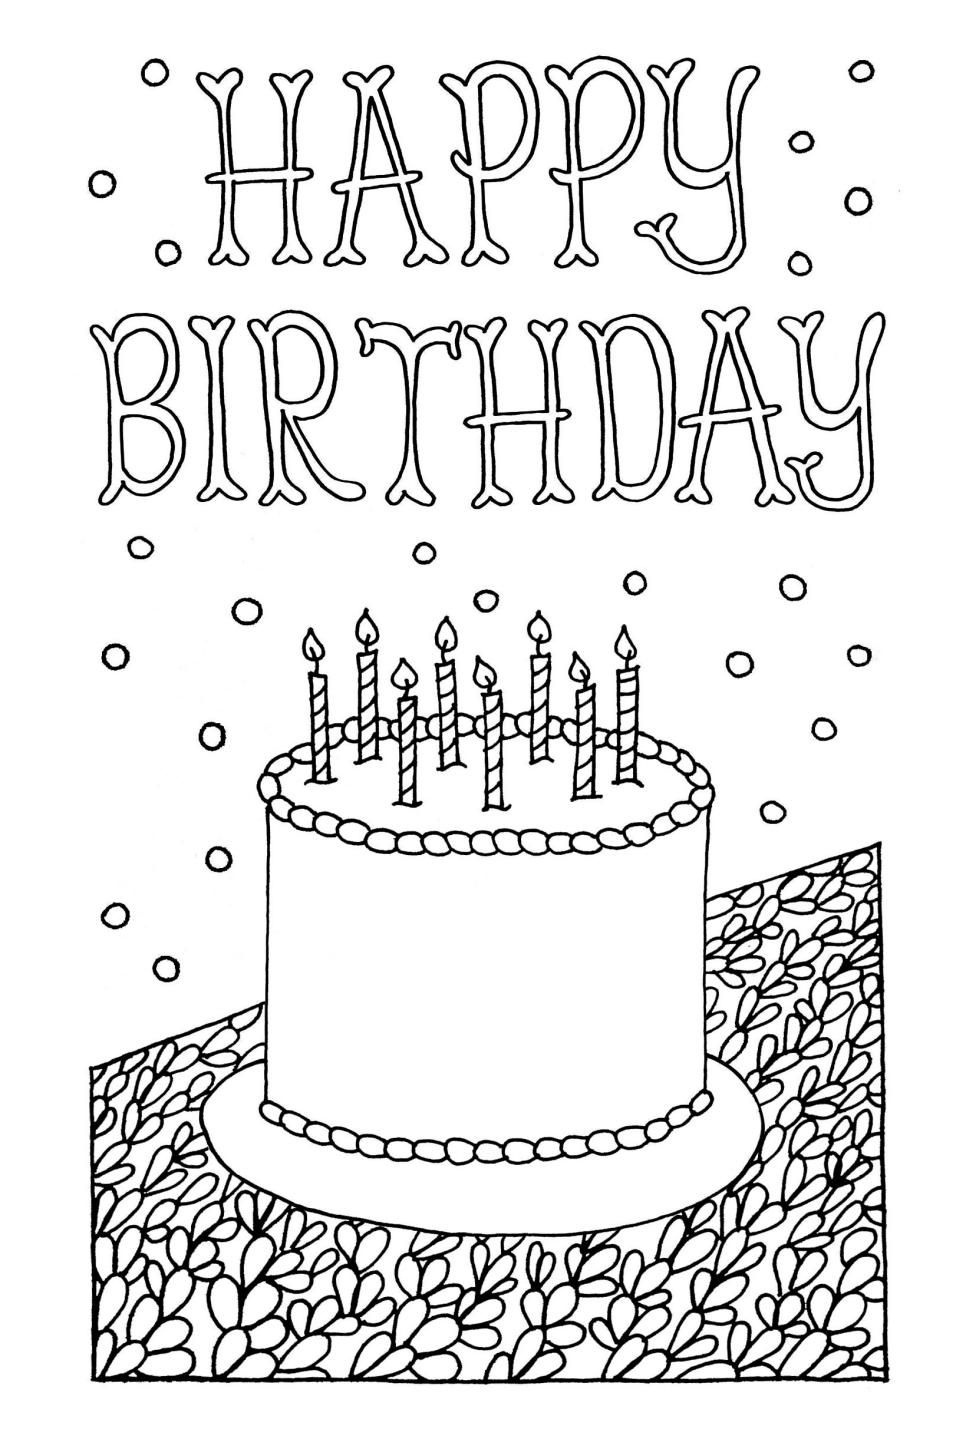 Free Downloadable Adult Coloring Greeting Cards | Diy Gifts | Happy - Free Printable Birthday Cards To Color